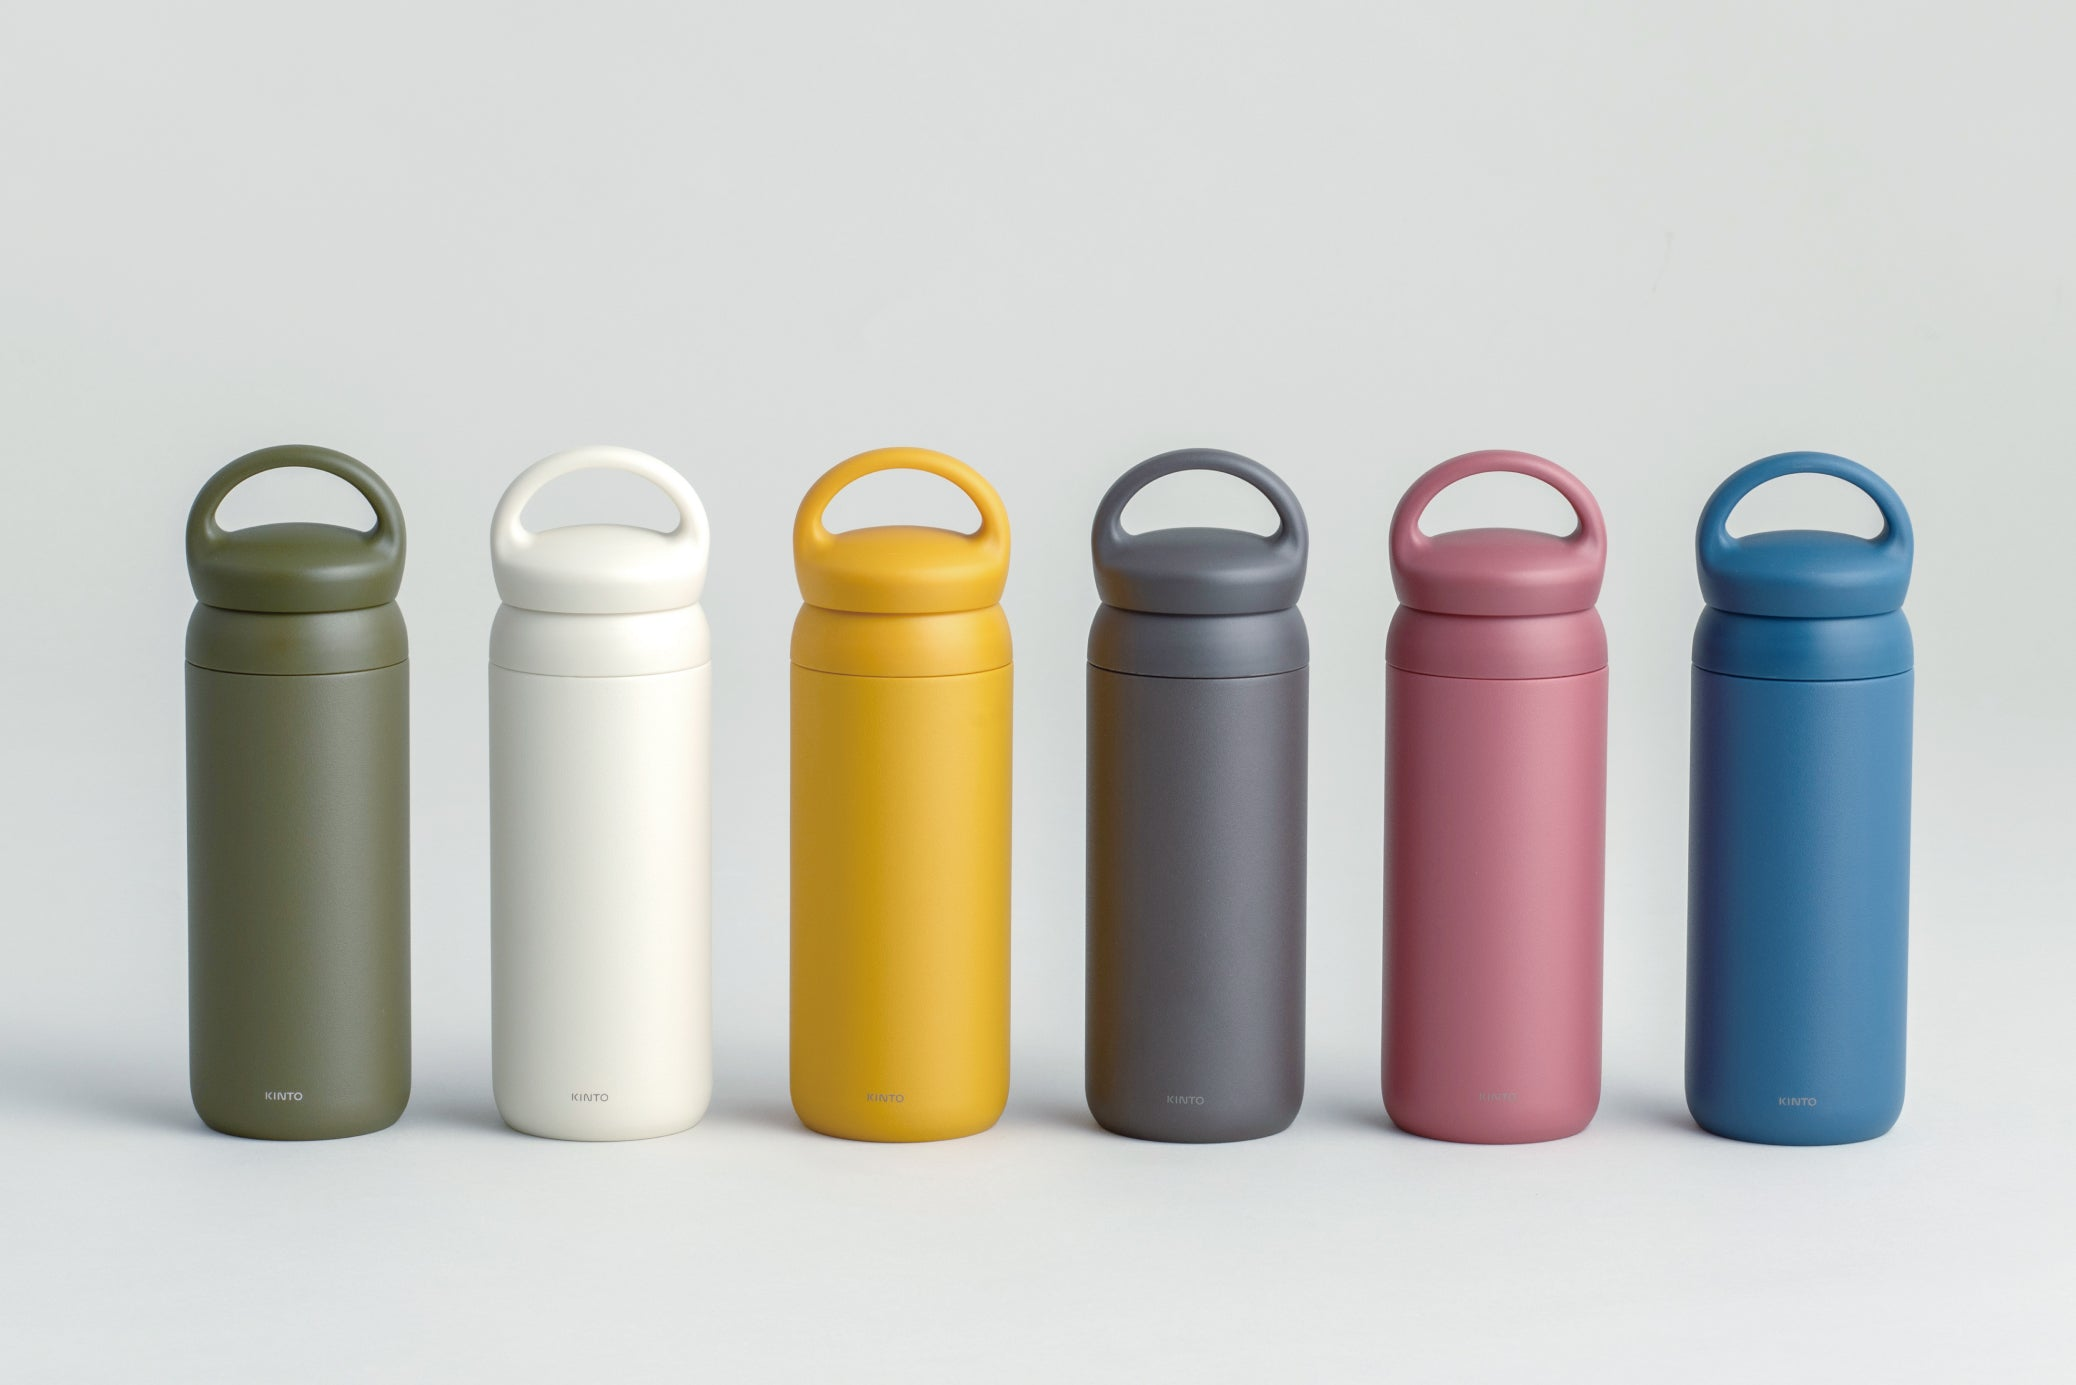 DAY OFF tumbler collection in mustard, white, navy, gray, rose, and khaki